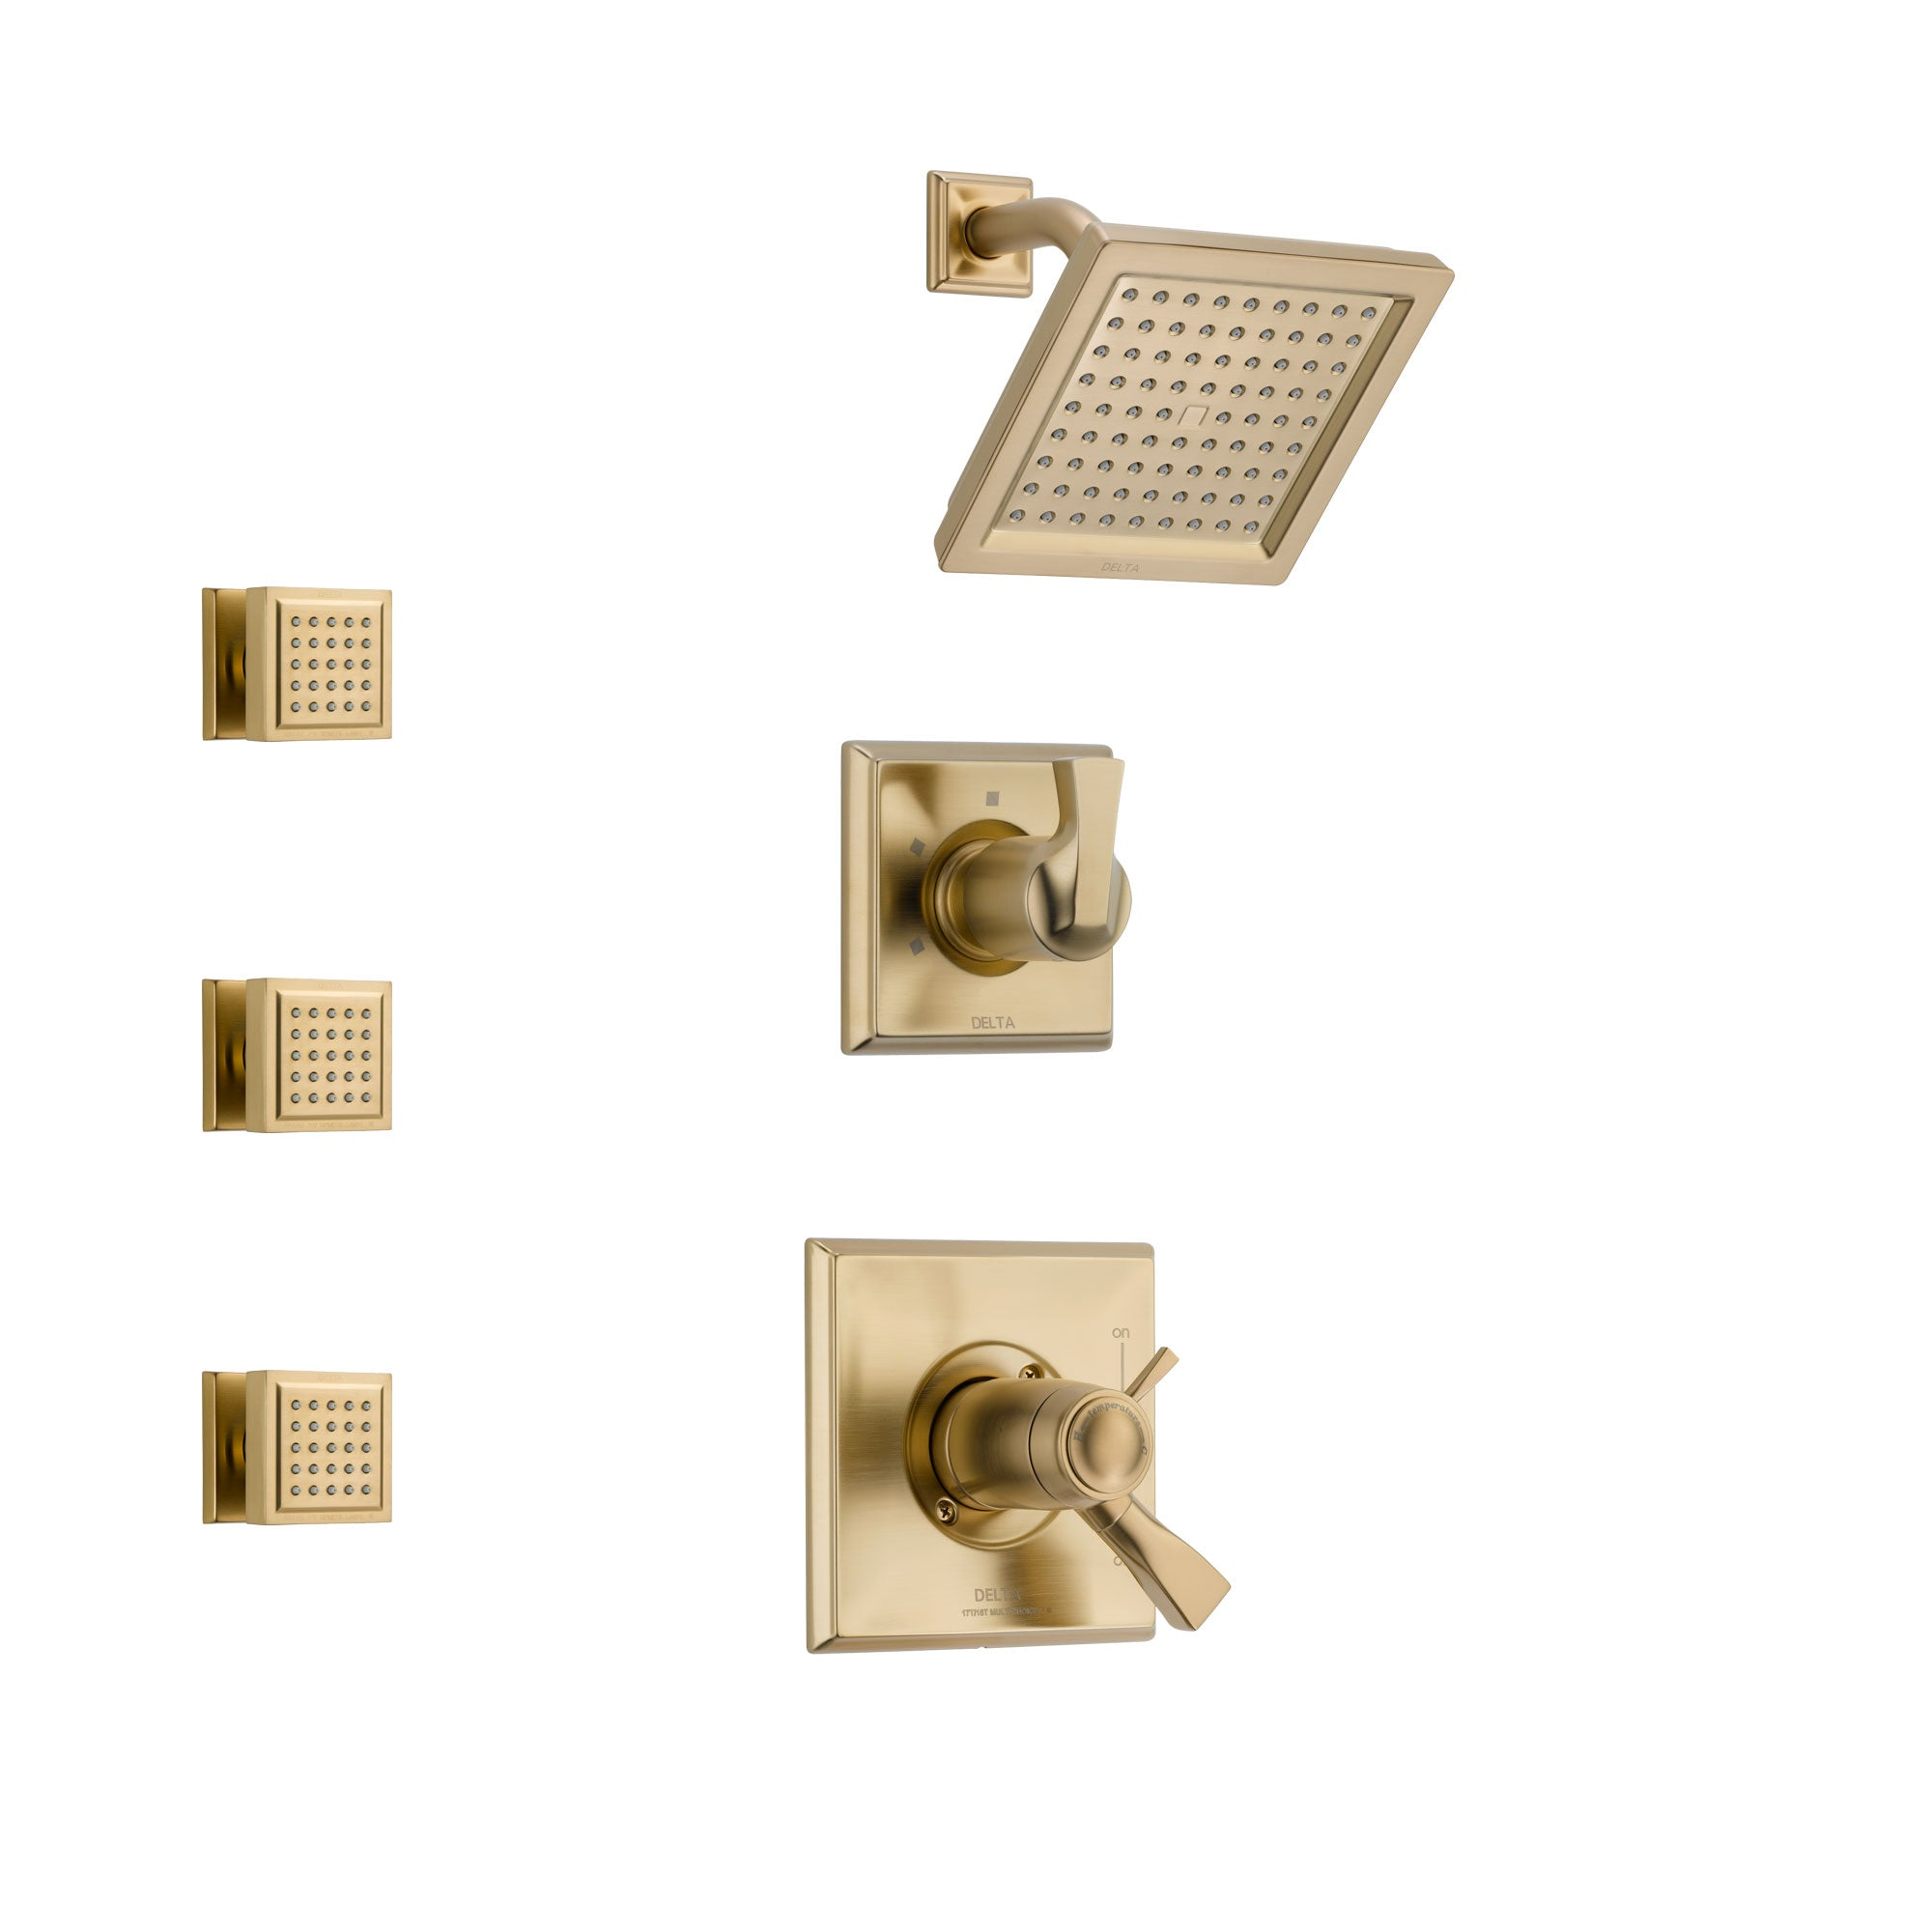 Delta Dryden Champagne Bronze Shower System with Dual Thermostatic Control Handle, 3-Setting Diverter, Showerhead, and 3 Body Sprays SS17T2511CZ1